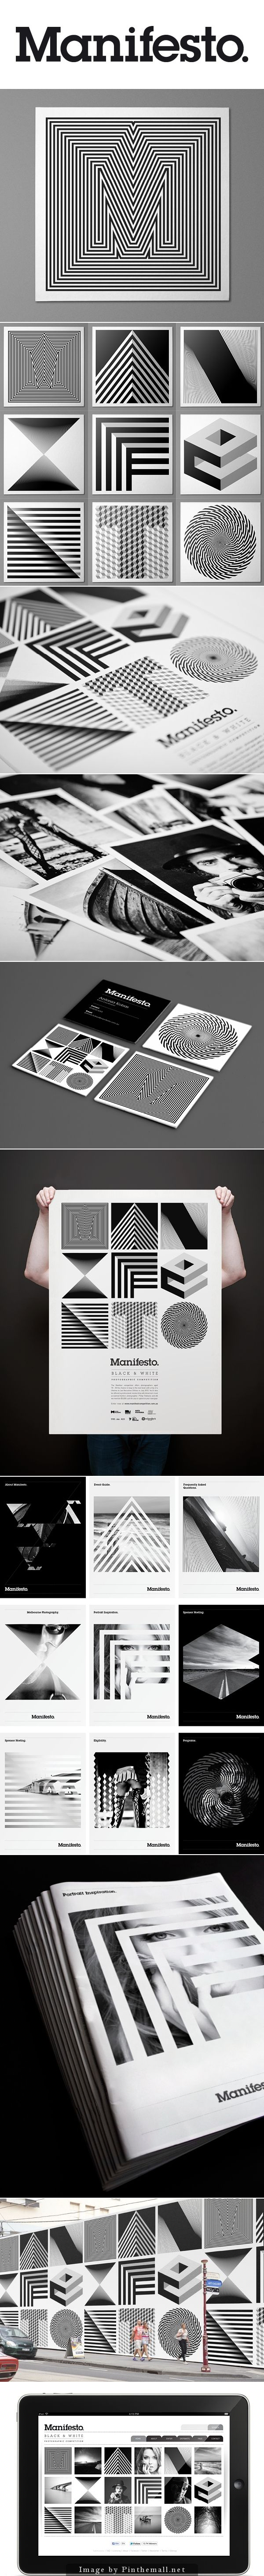 Manifesto Identity - Josip Kelava. Manifesto is a black and white photographic competition for university students studying Photography in Melbourne.